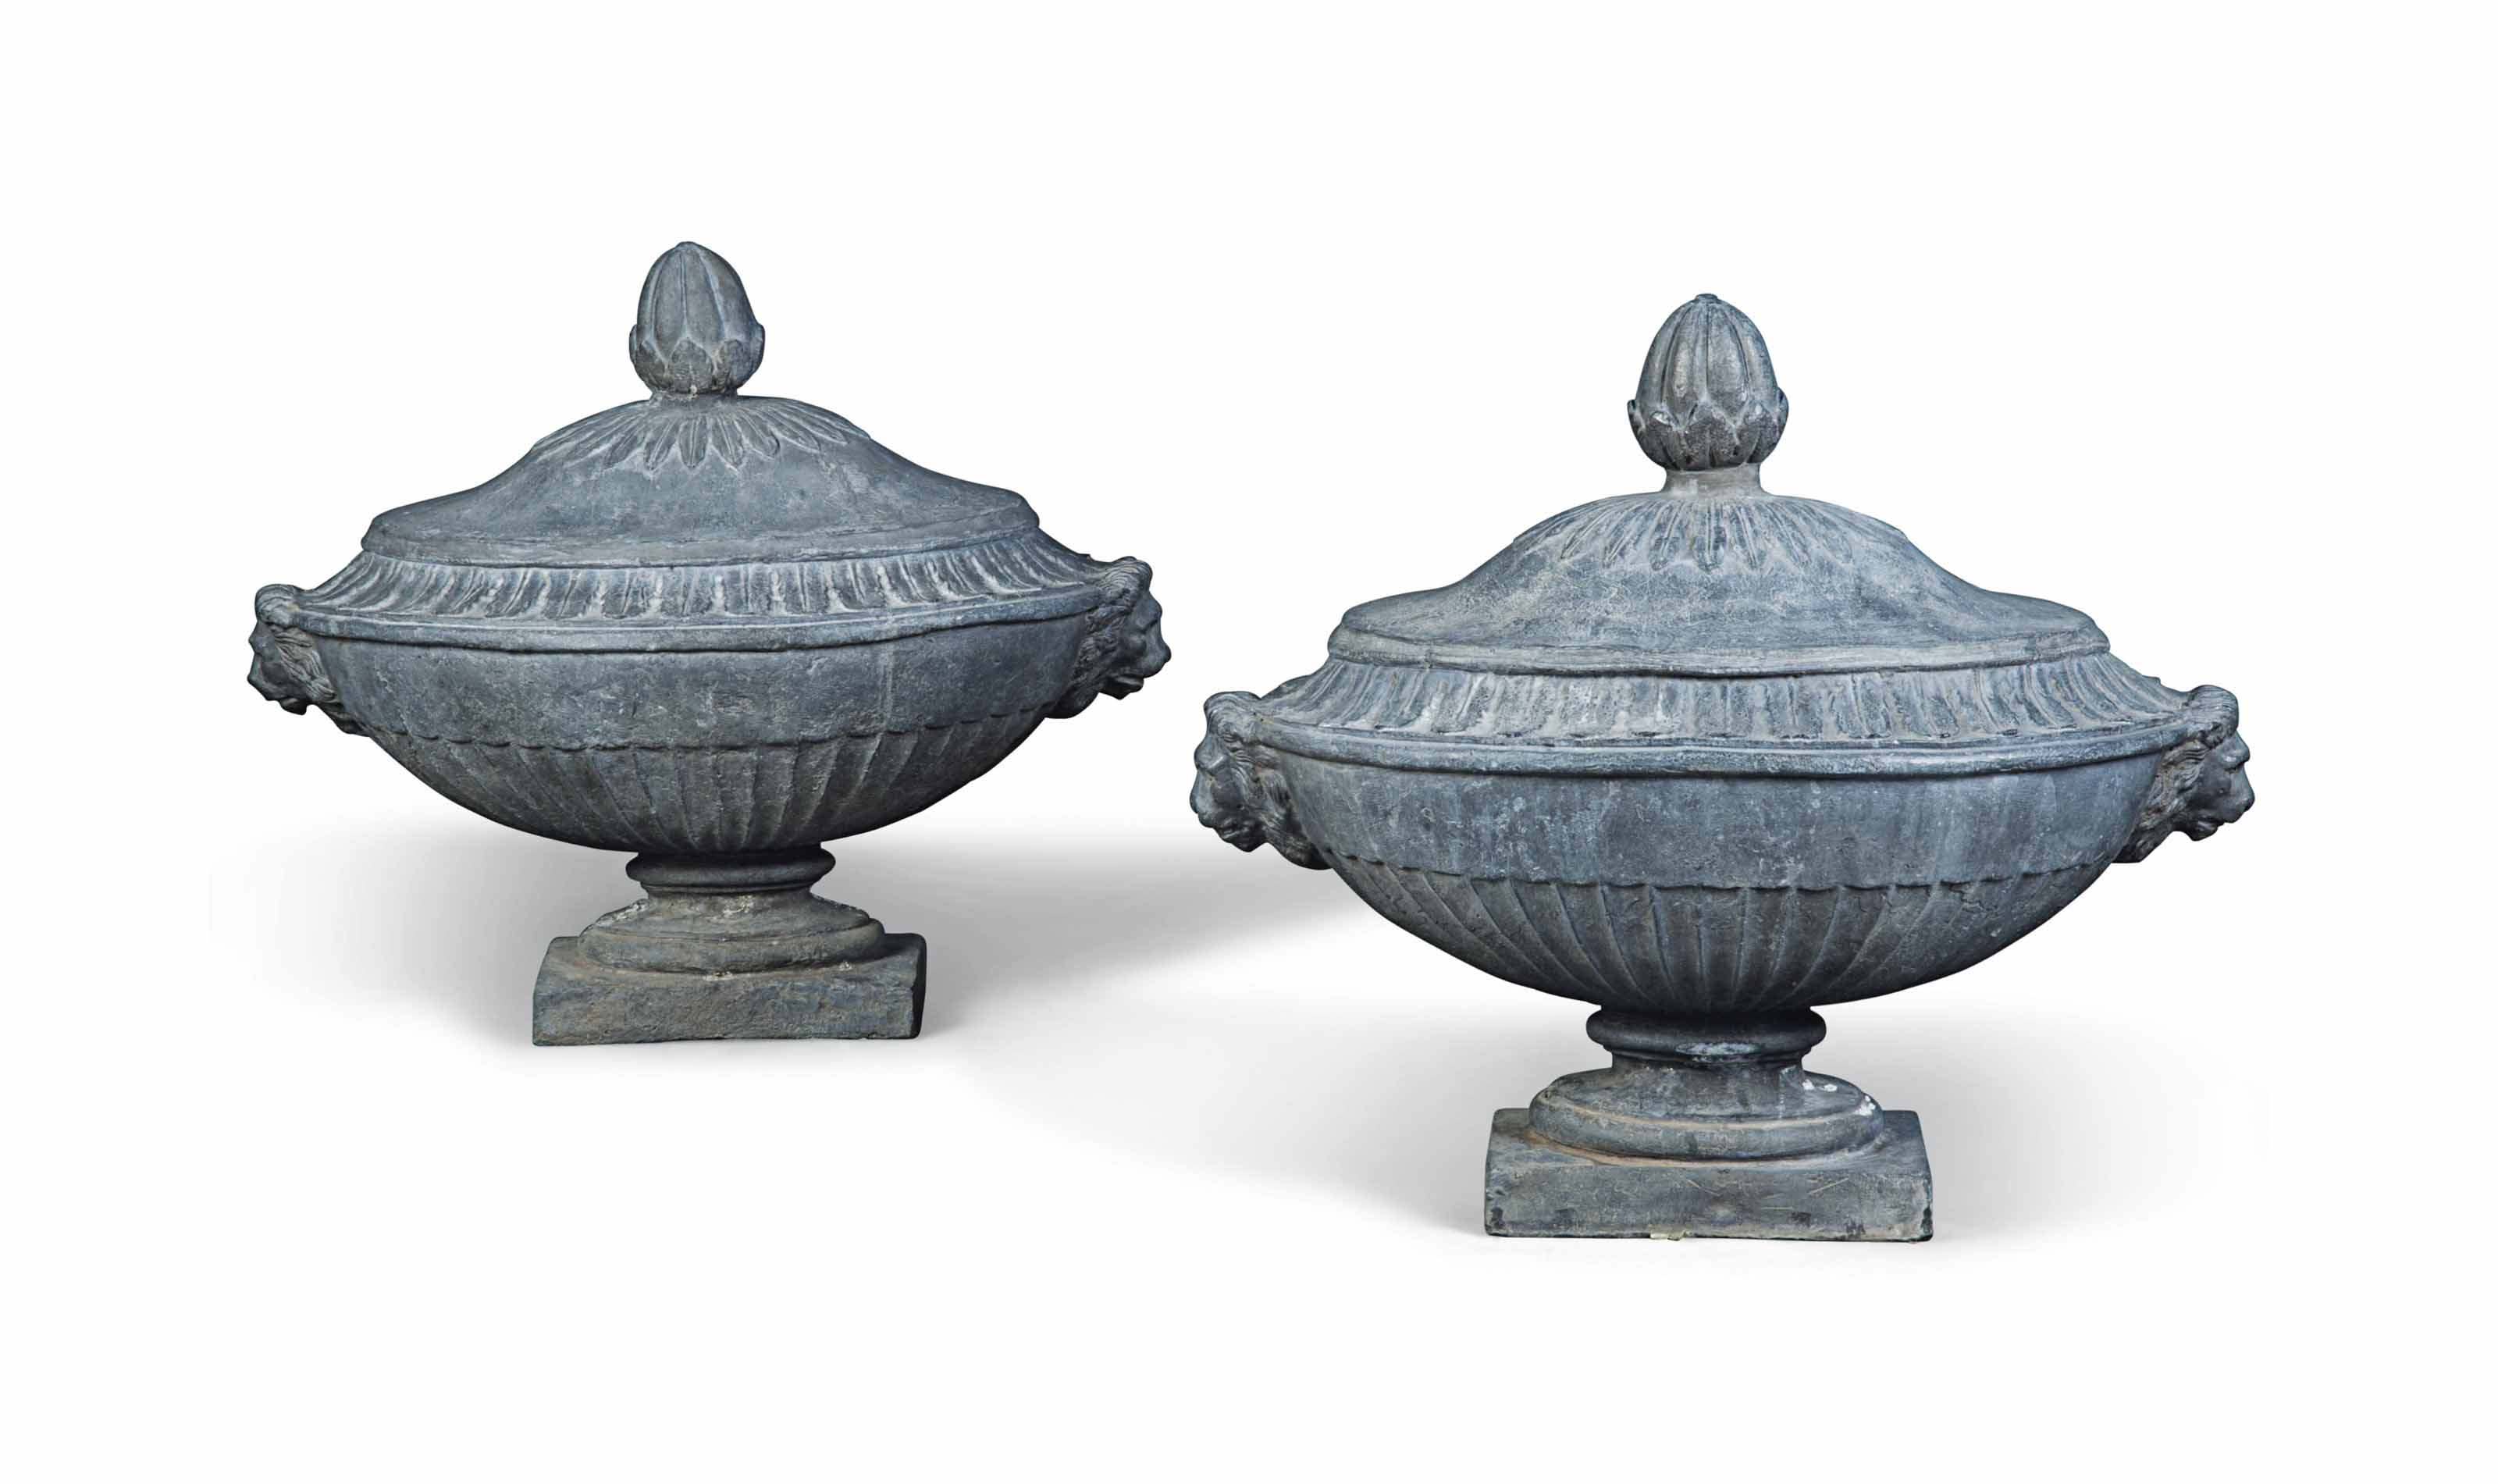 A PAIR OF OVAL LEAD URNS